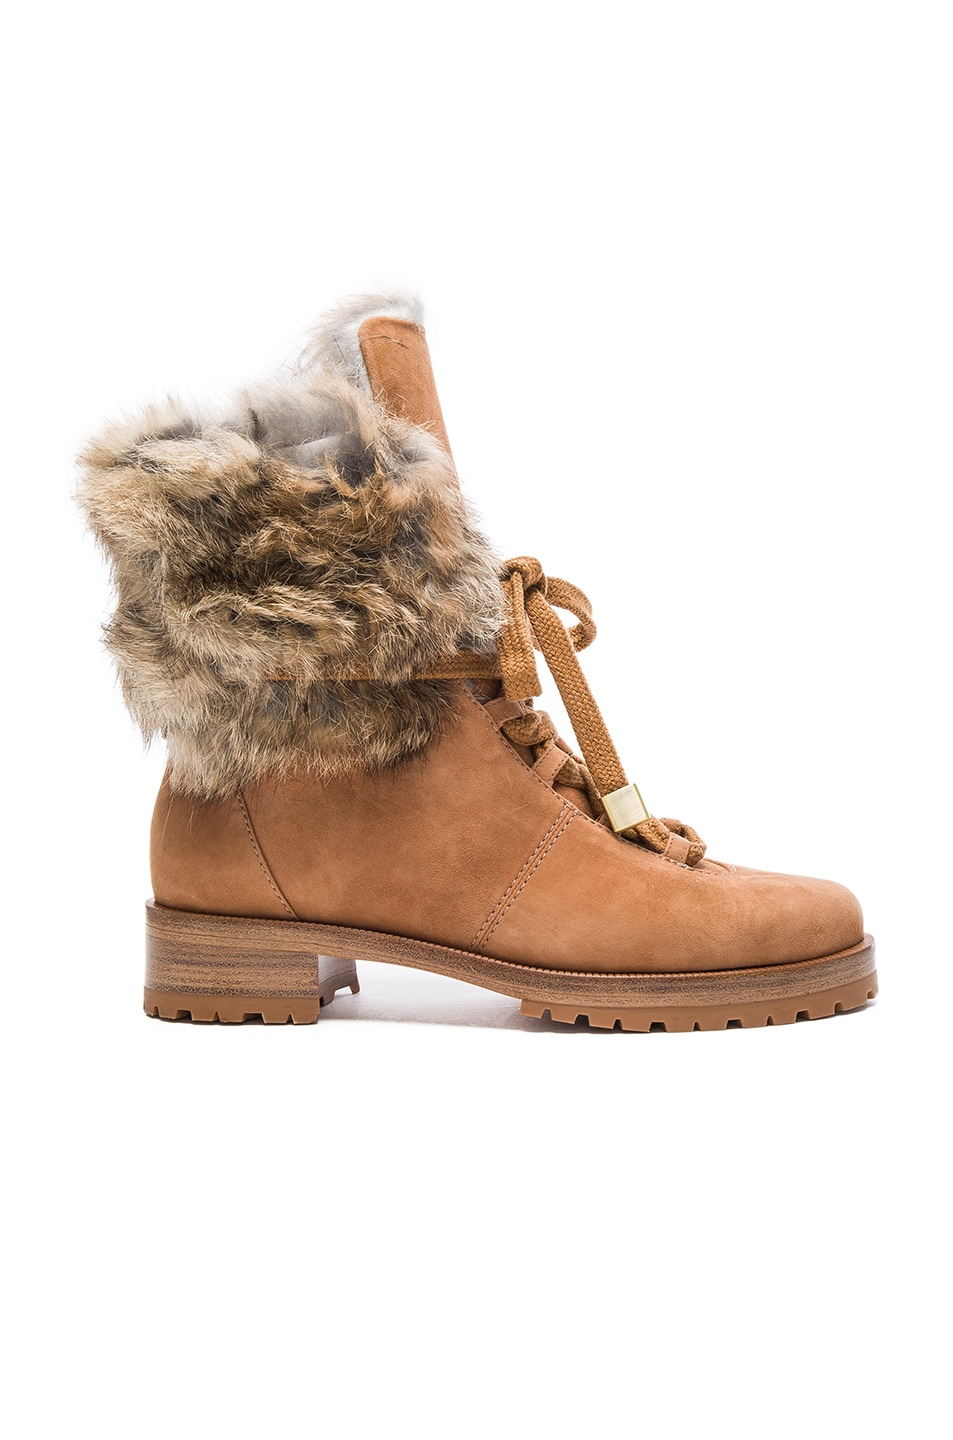 Image 1 of Alexandre Birman Winter Benjamin Suede Boots in Beige & Natural